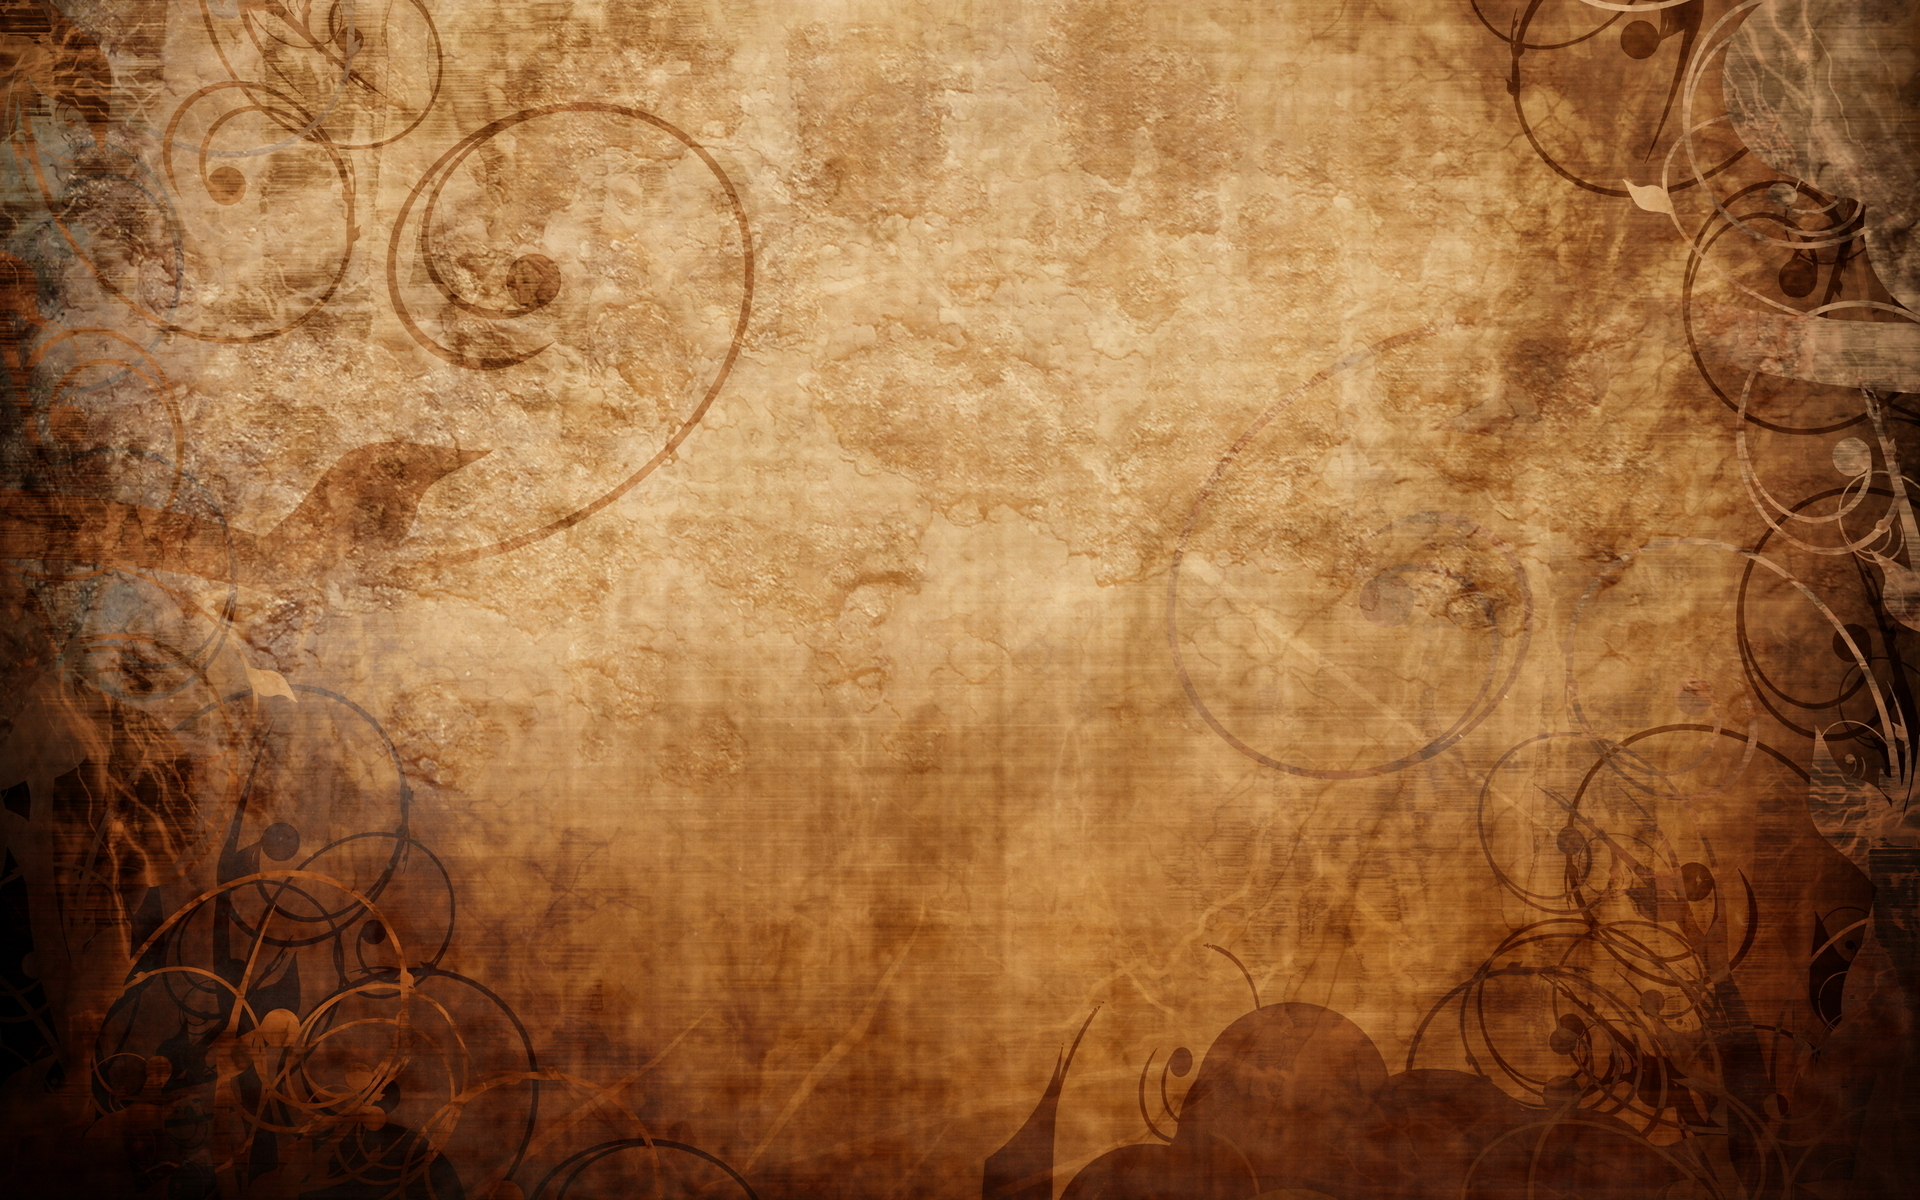 brown-vintage-background-18641-19113-hd-wallpapers